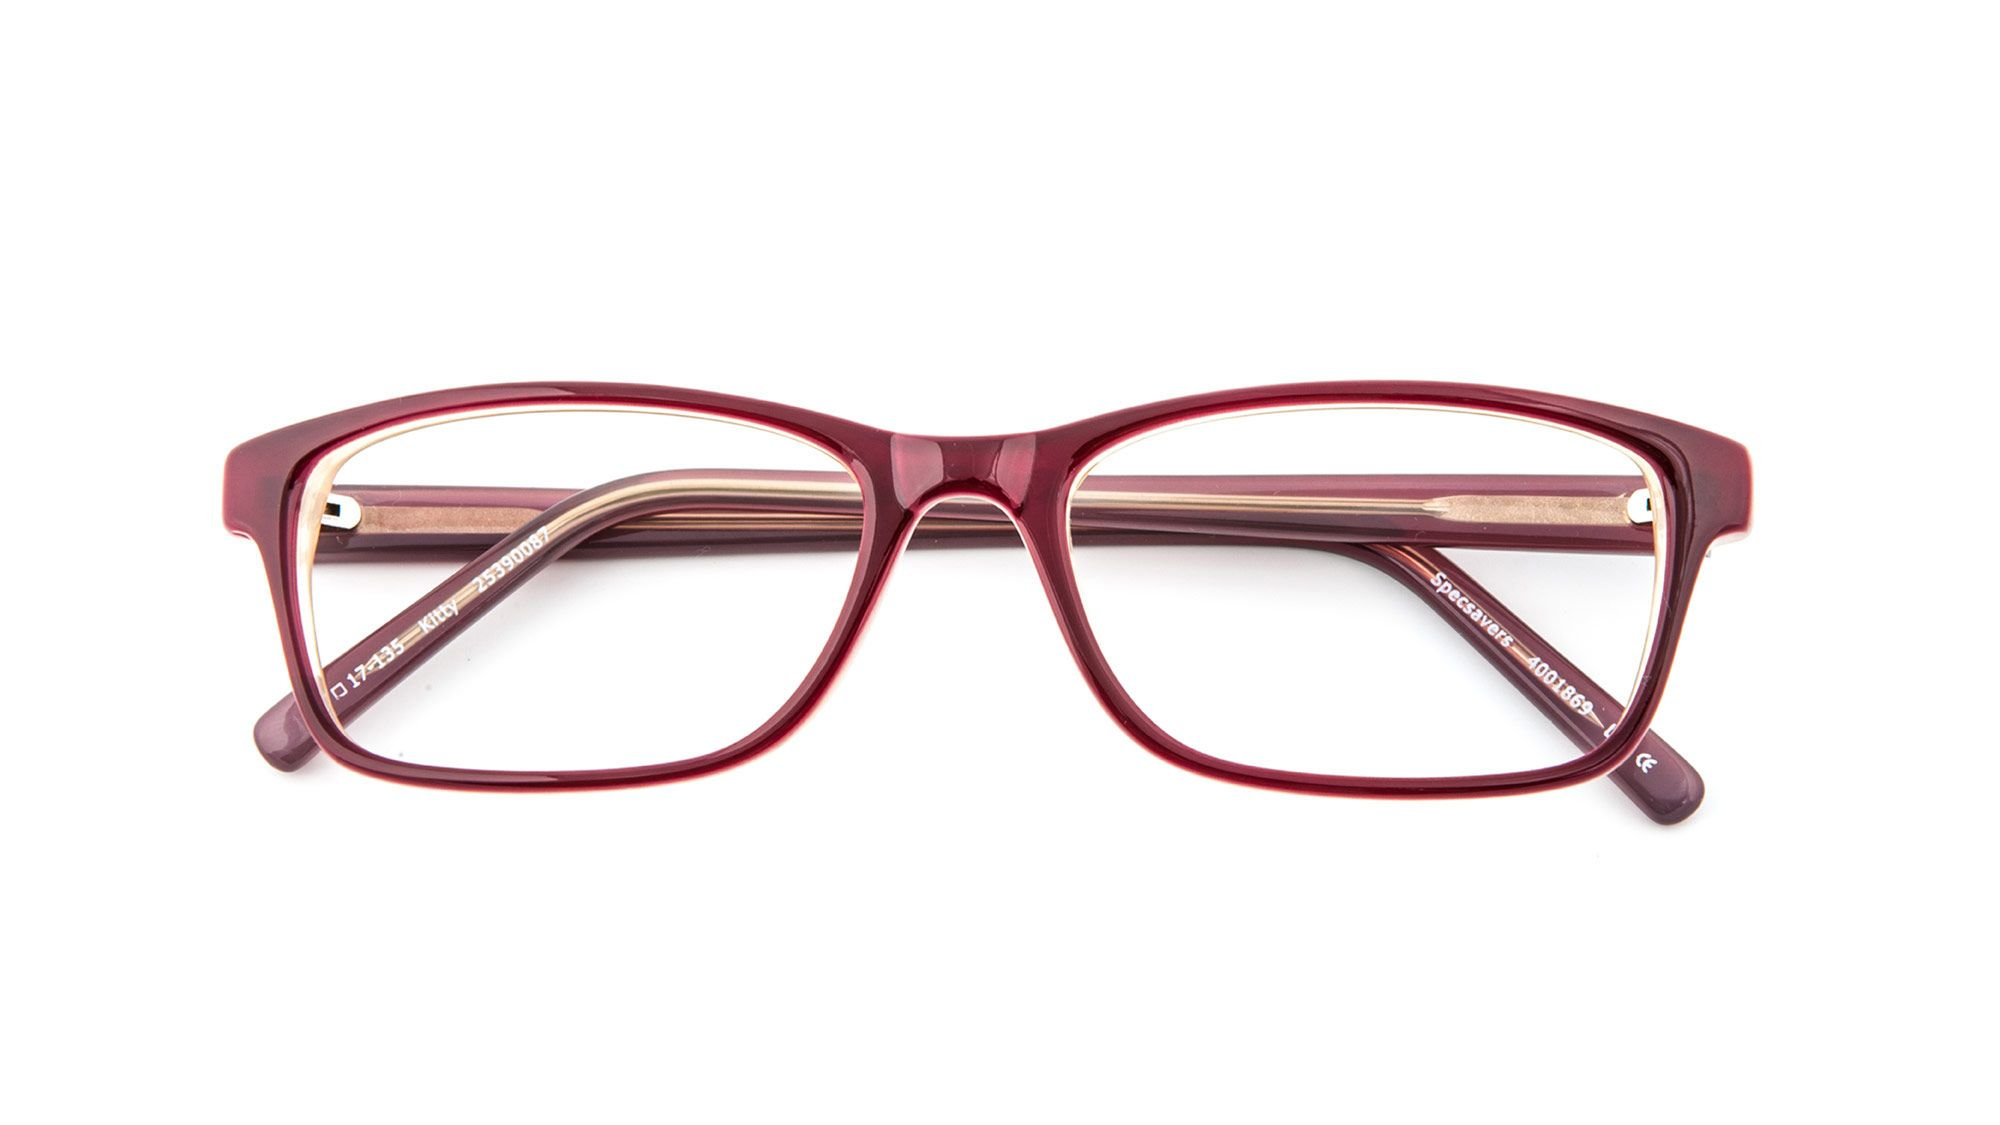 KITTY Glasses by Specsavers | Specsavers UK | accesorios | Pinterest ...